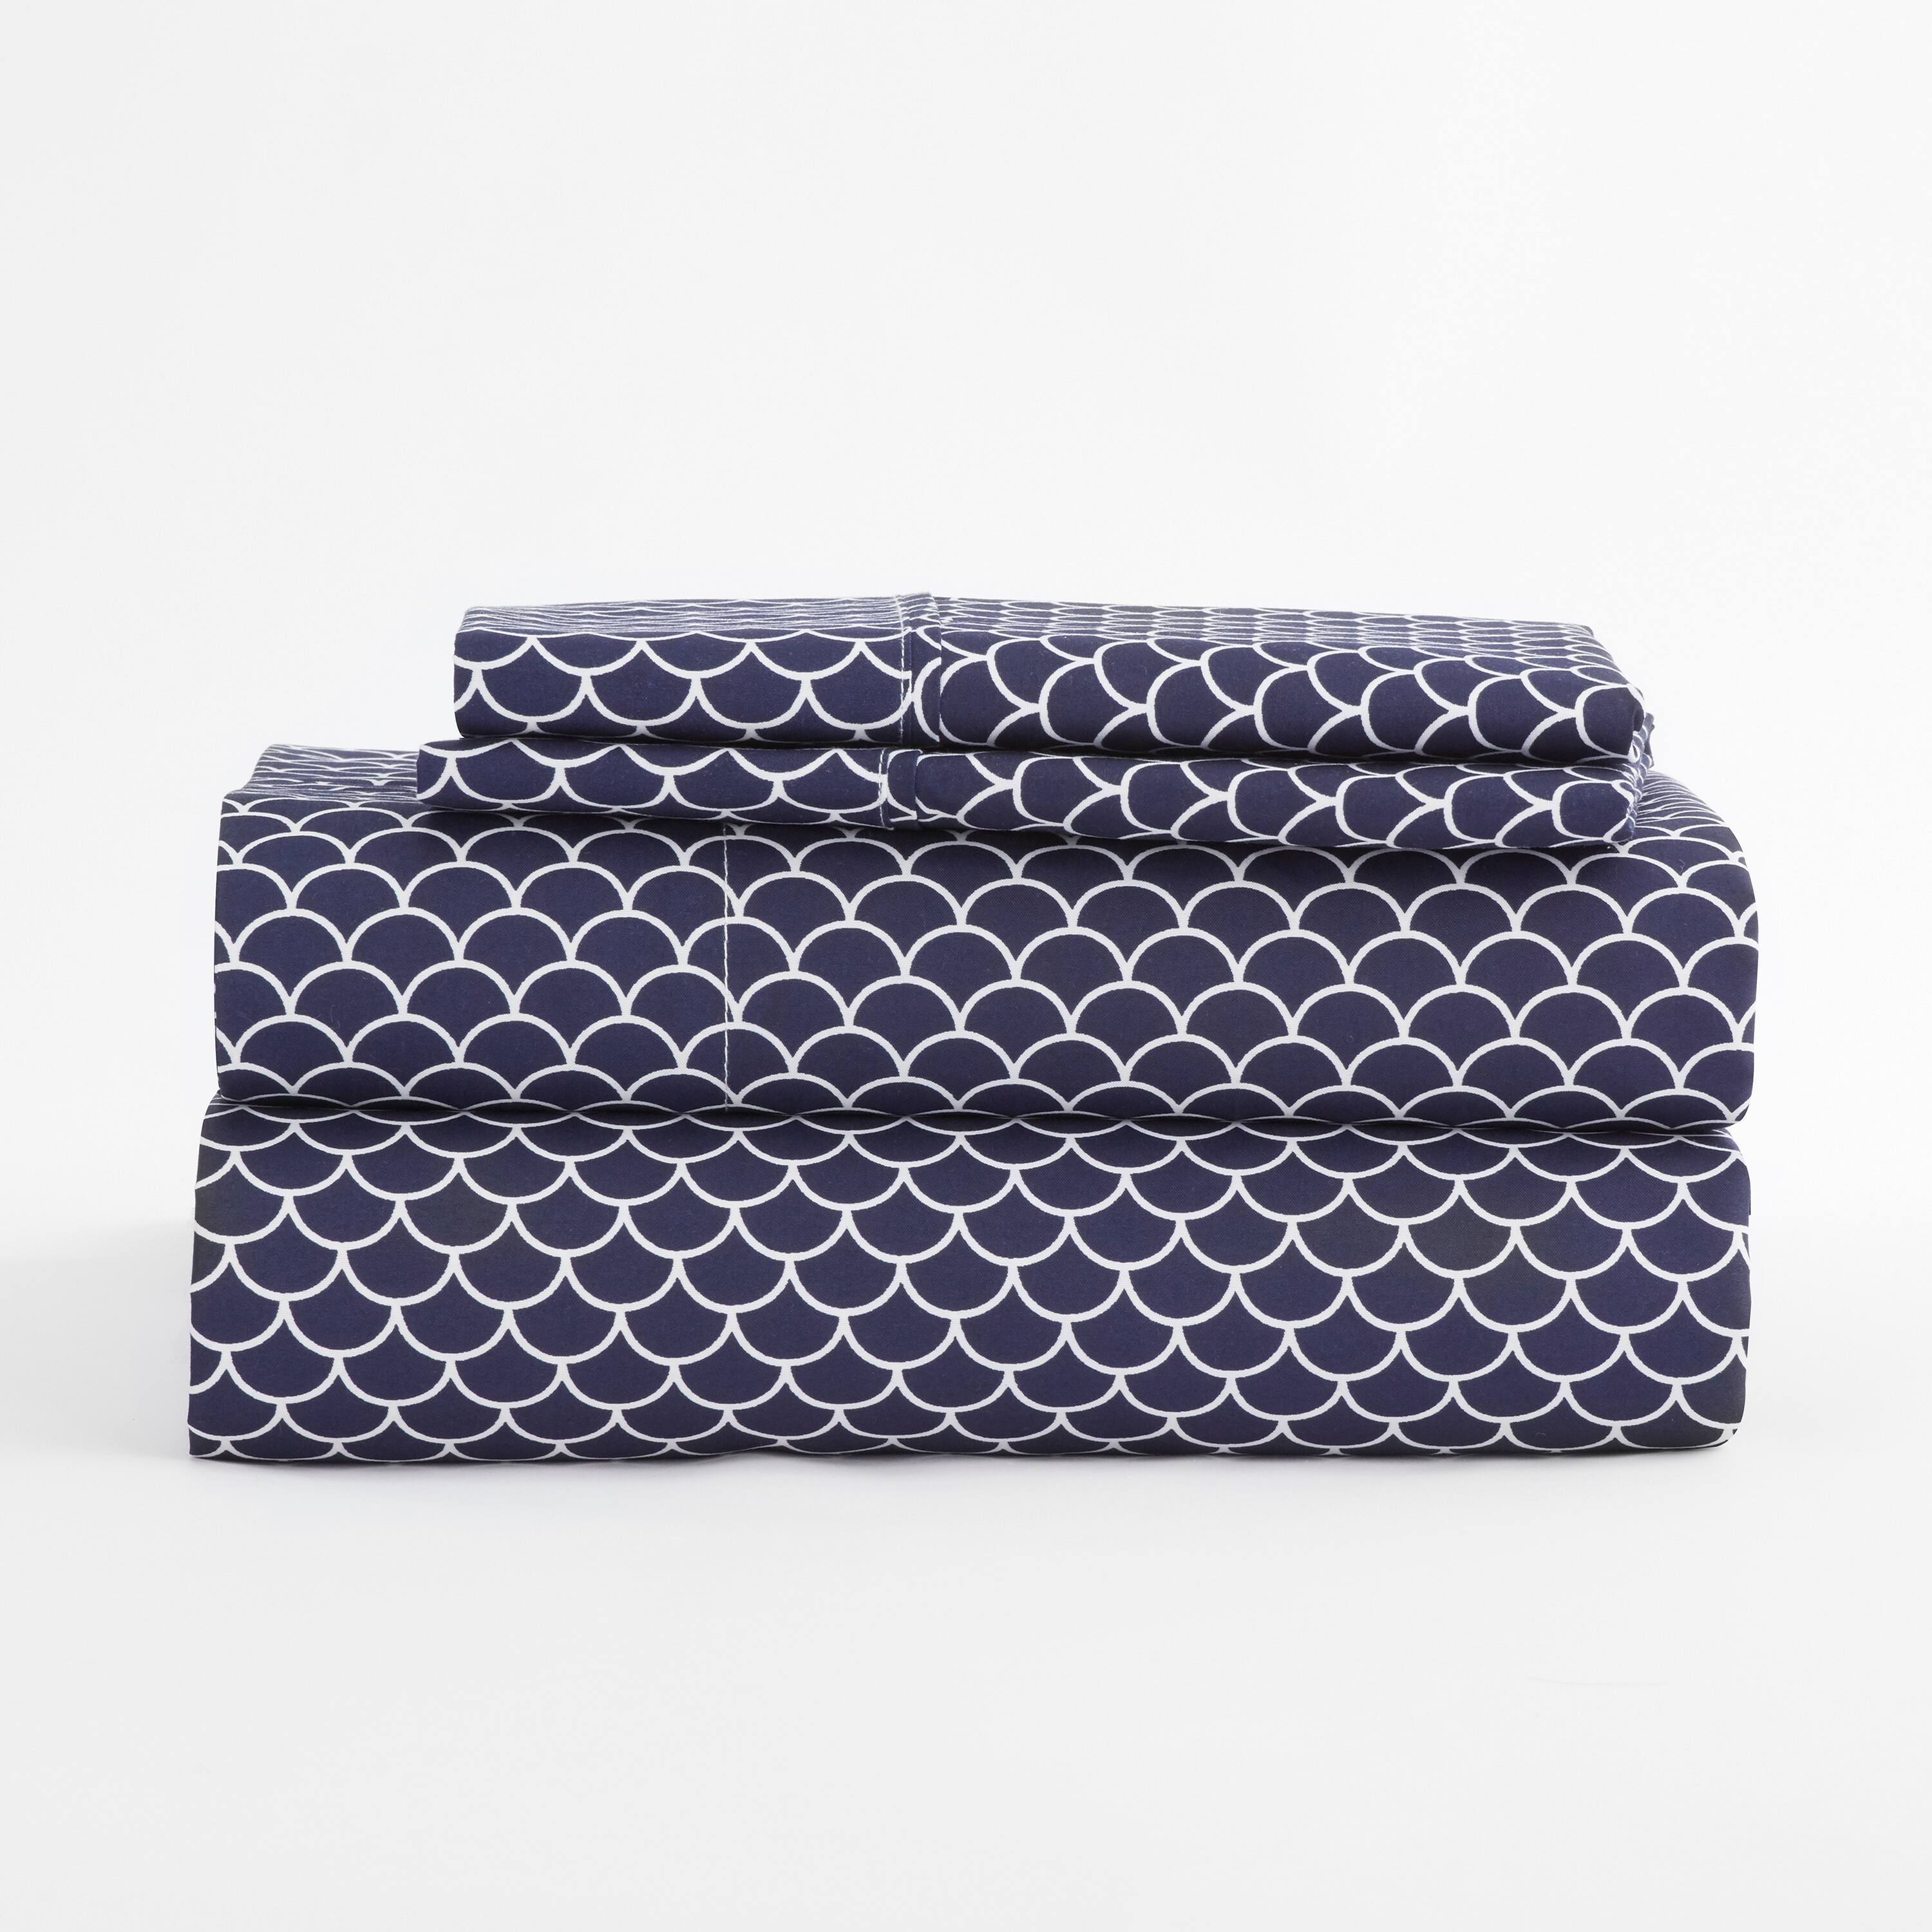 Linens & Hutch Patterned 4-Piece Microfiber Sheet Sets from $22.68 + Free Shipping